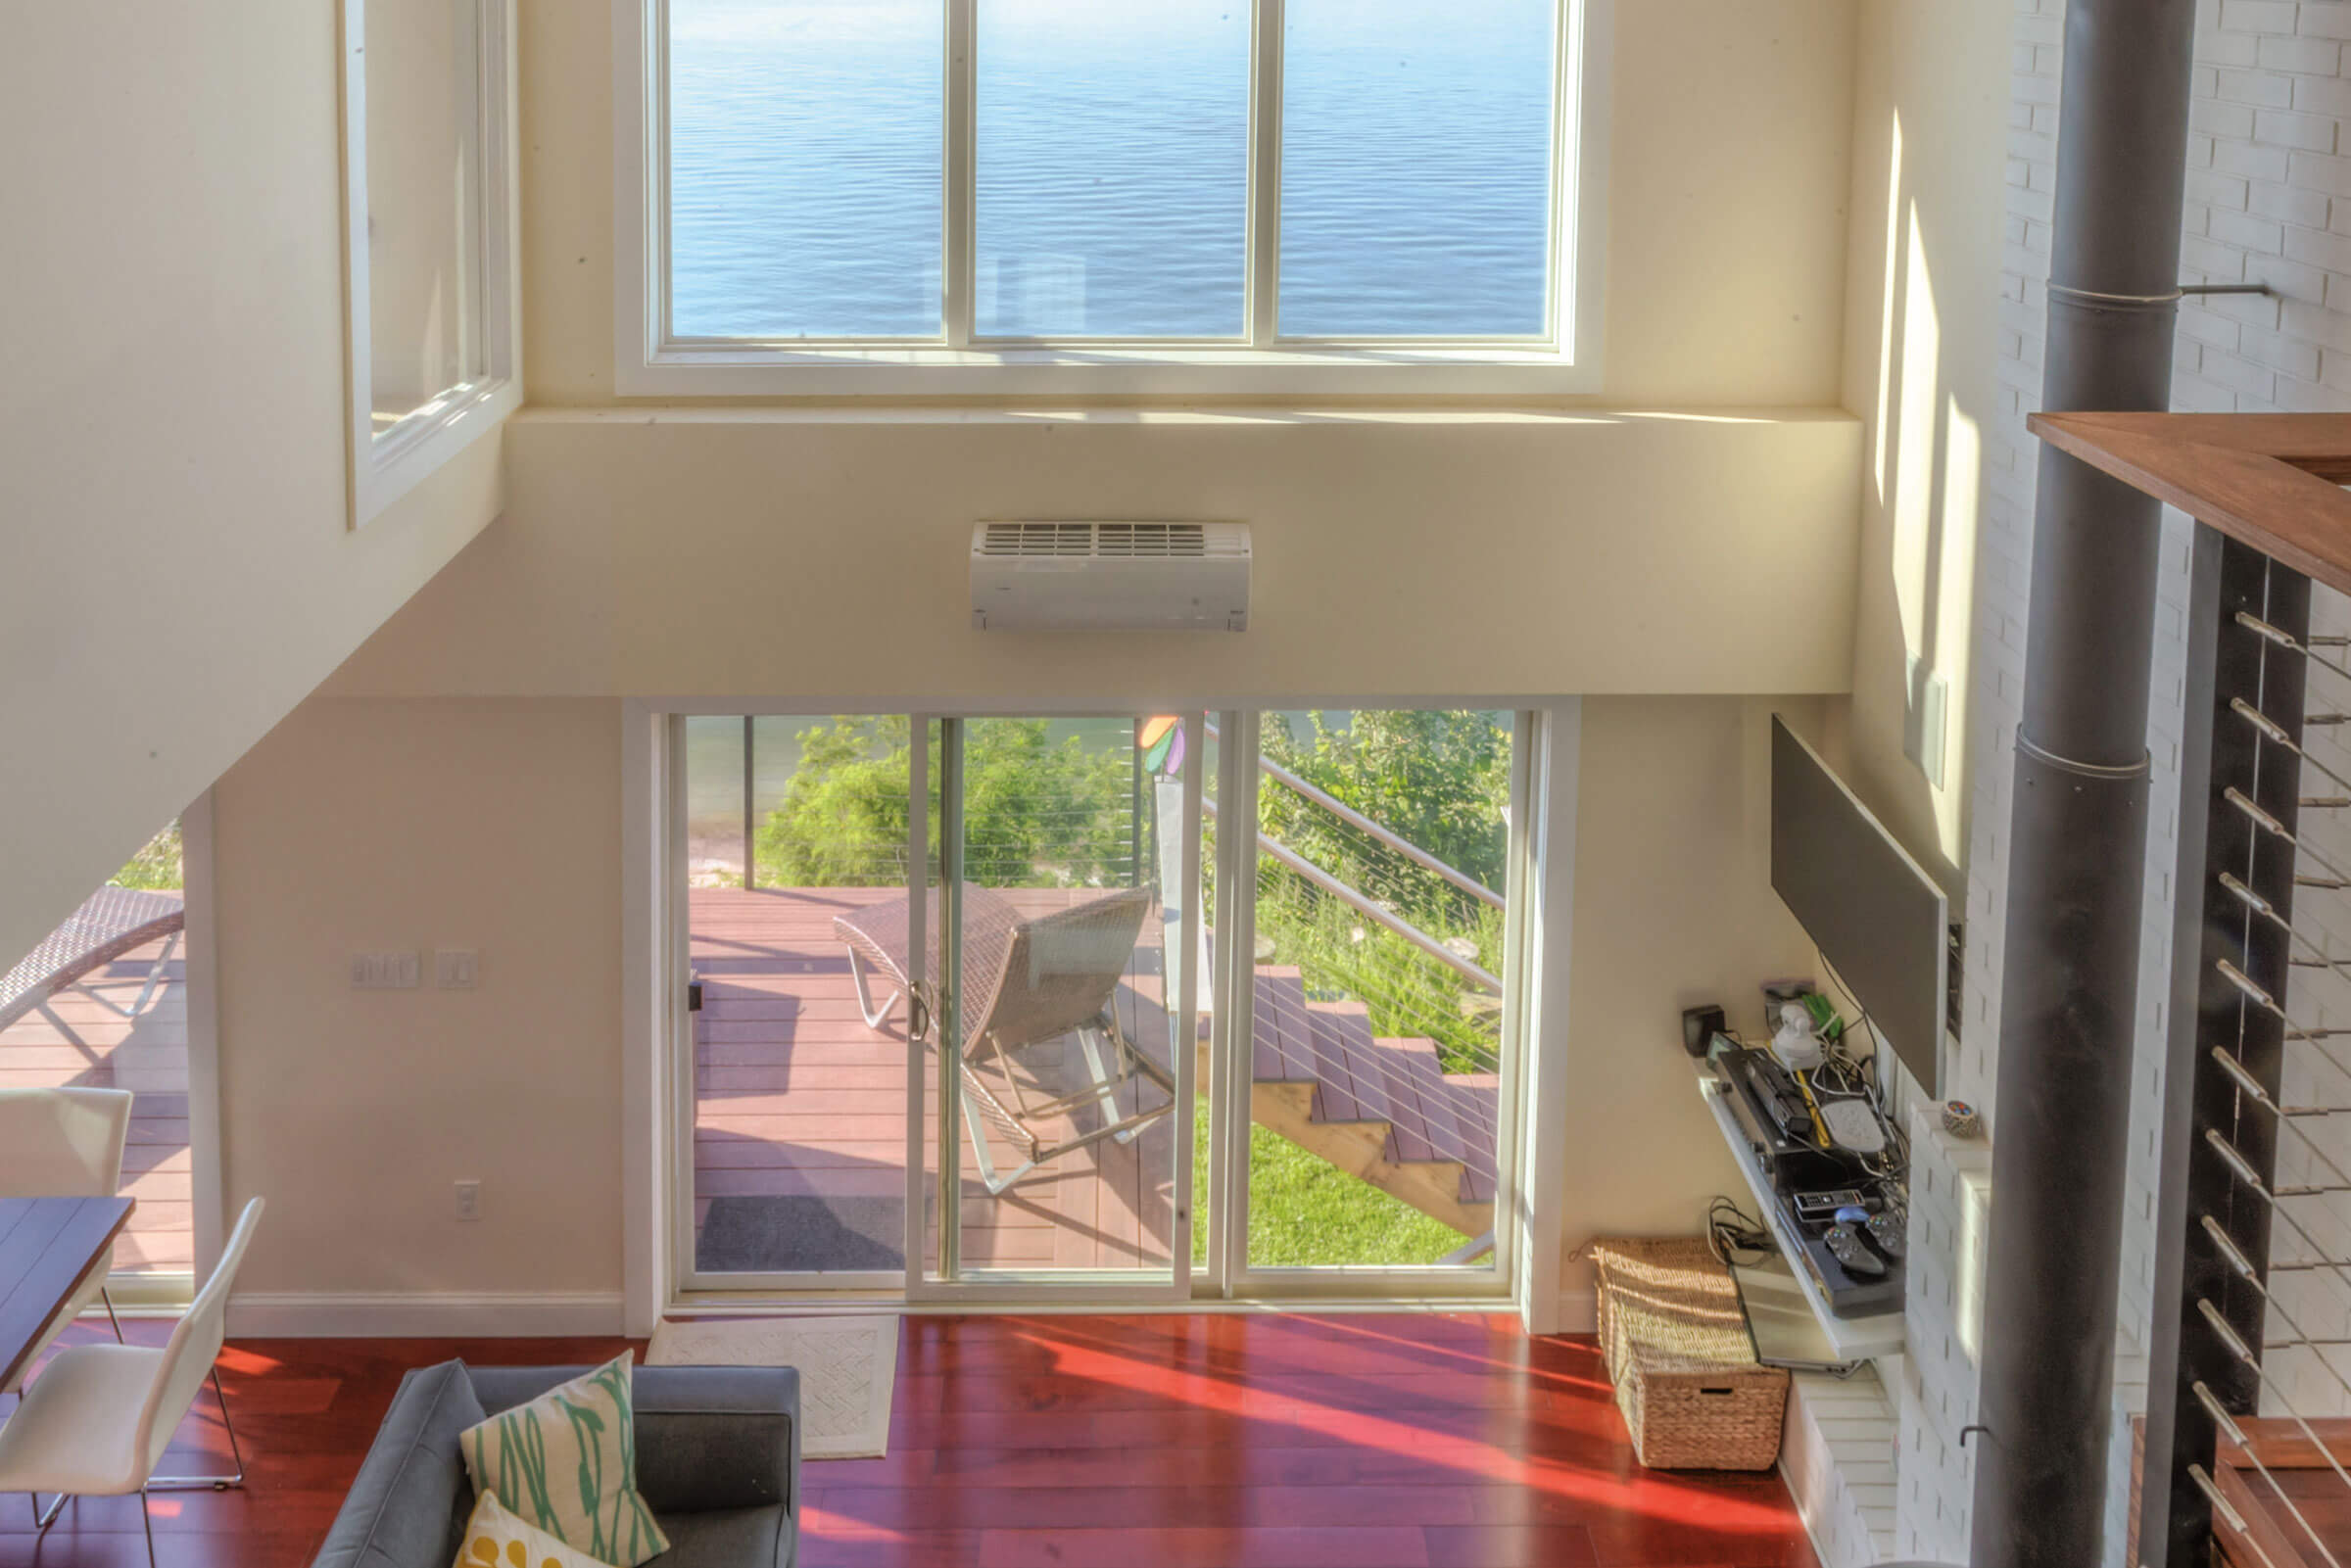 Ocean View House With Essential Sliding Patio Door